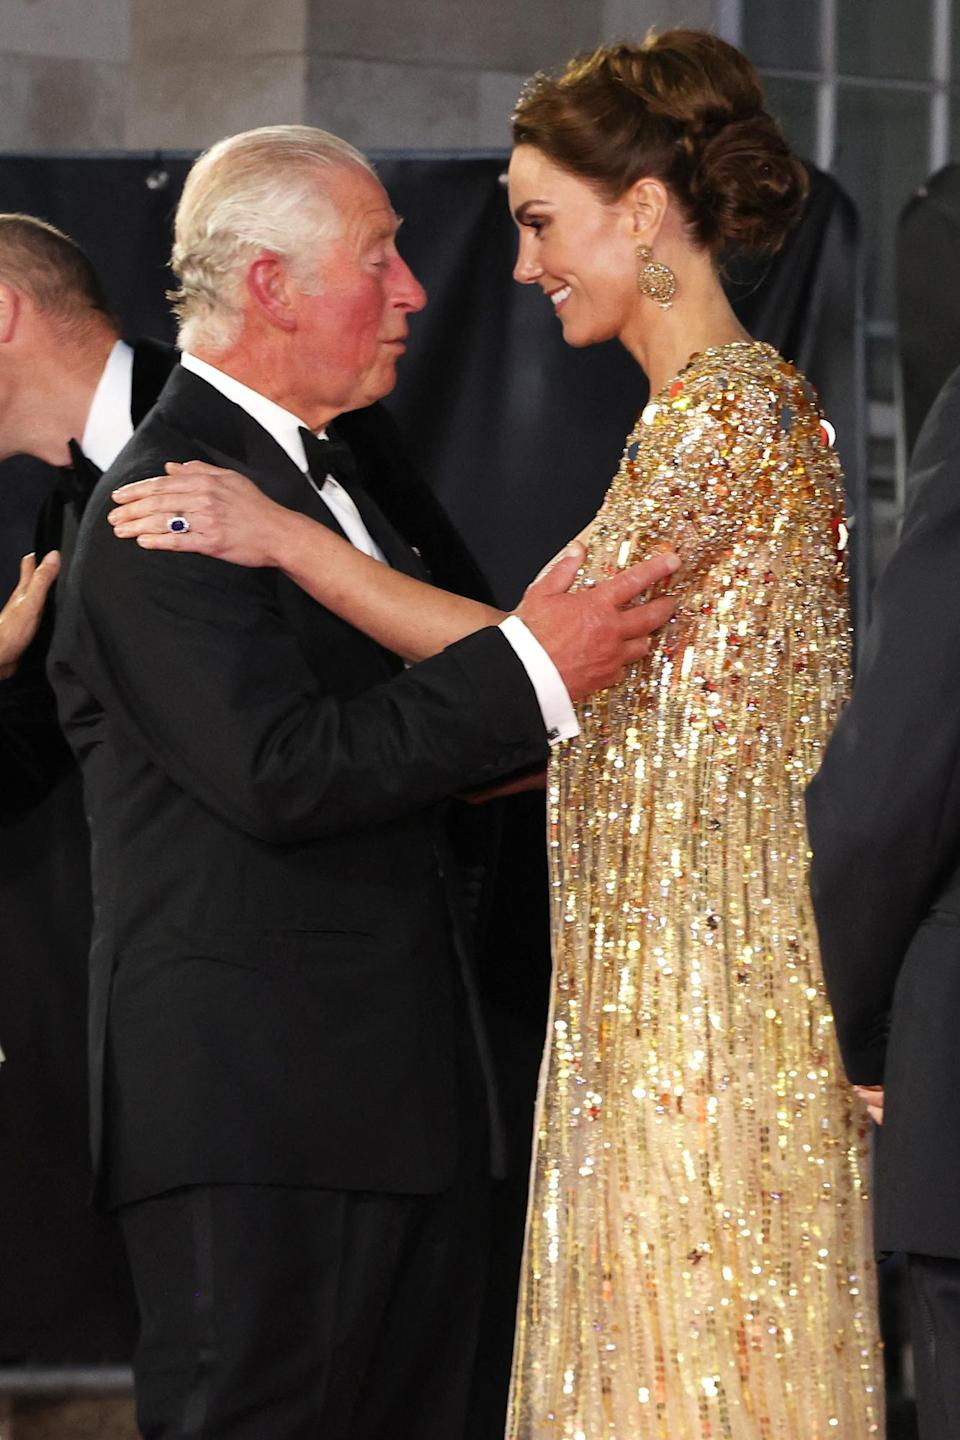 <p>Outside, Kate shared a sweet moment with her father-in-law, who later placed a kiss on her cheek.</p>